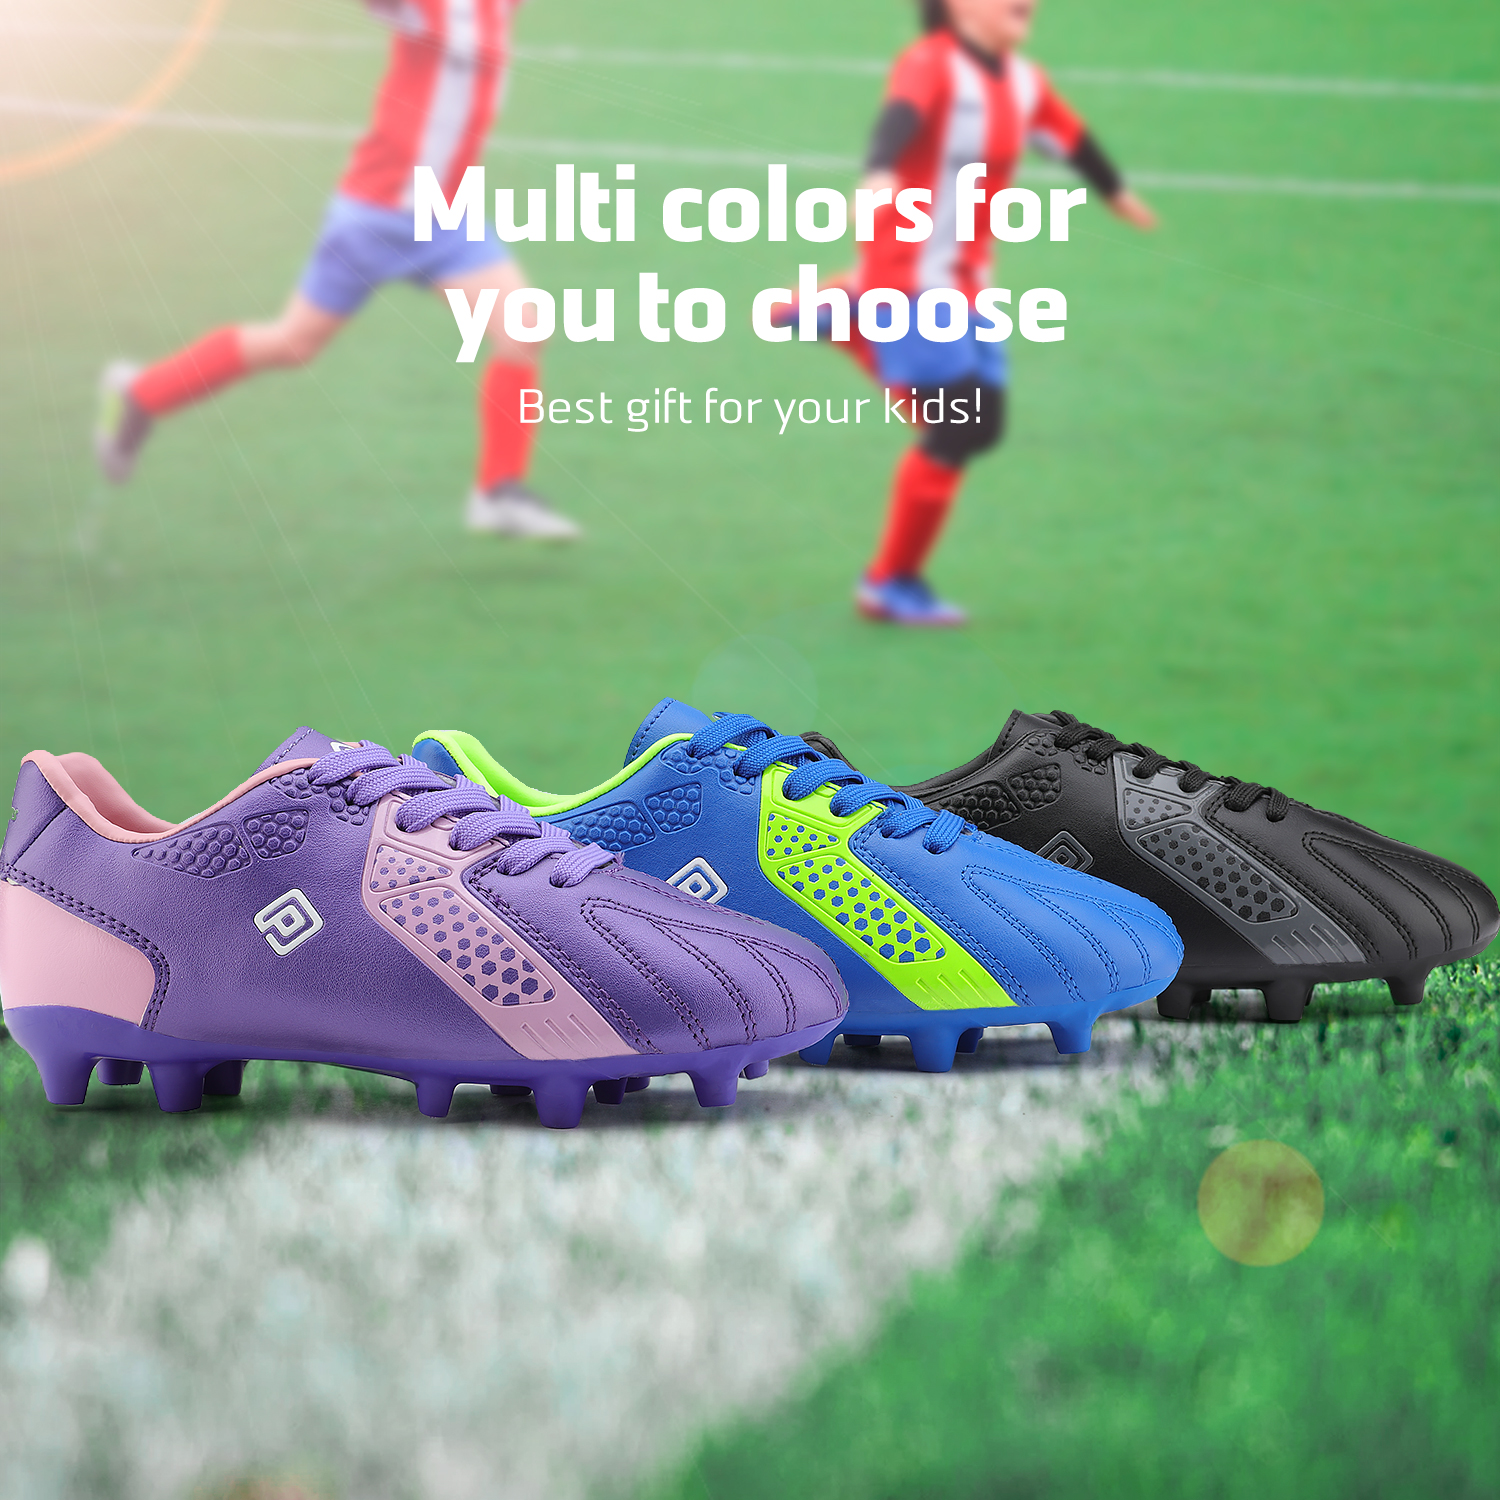 miniature 31 - Men's Kids Football Chaussures Crampons Football Indoor Sports Baskets Sneakers Fashion